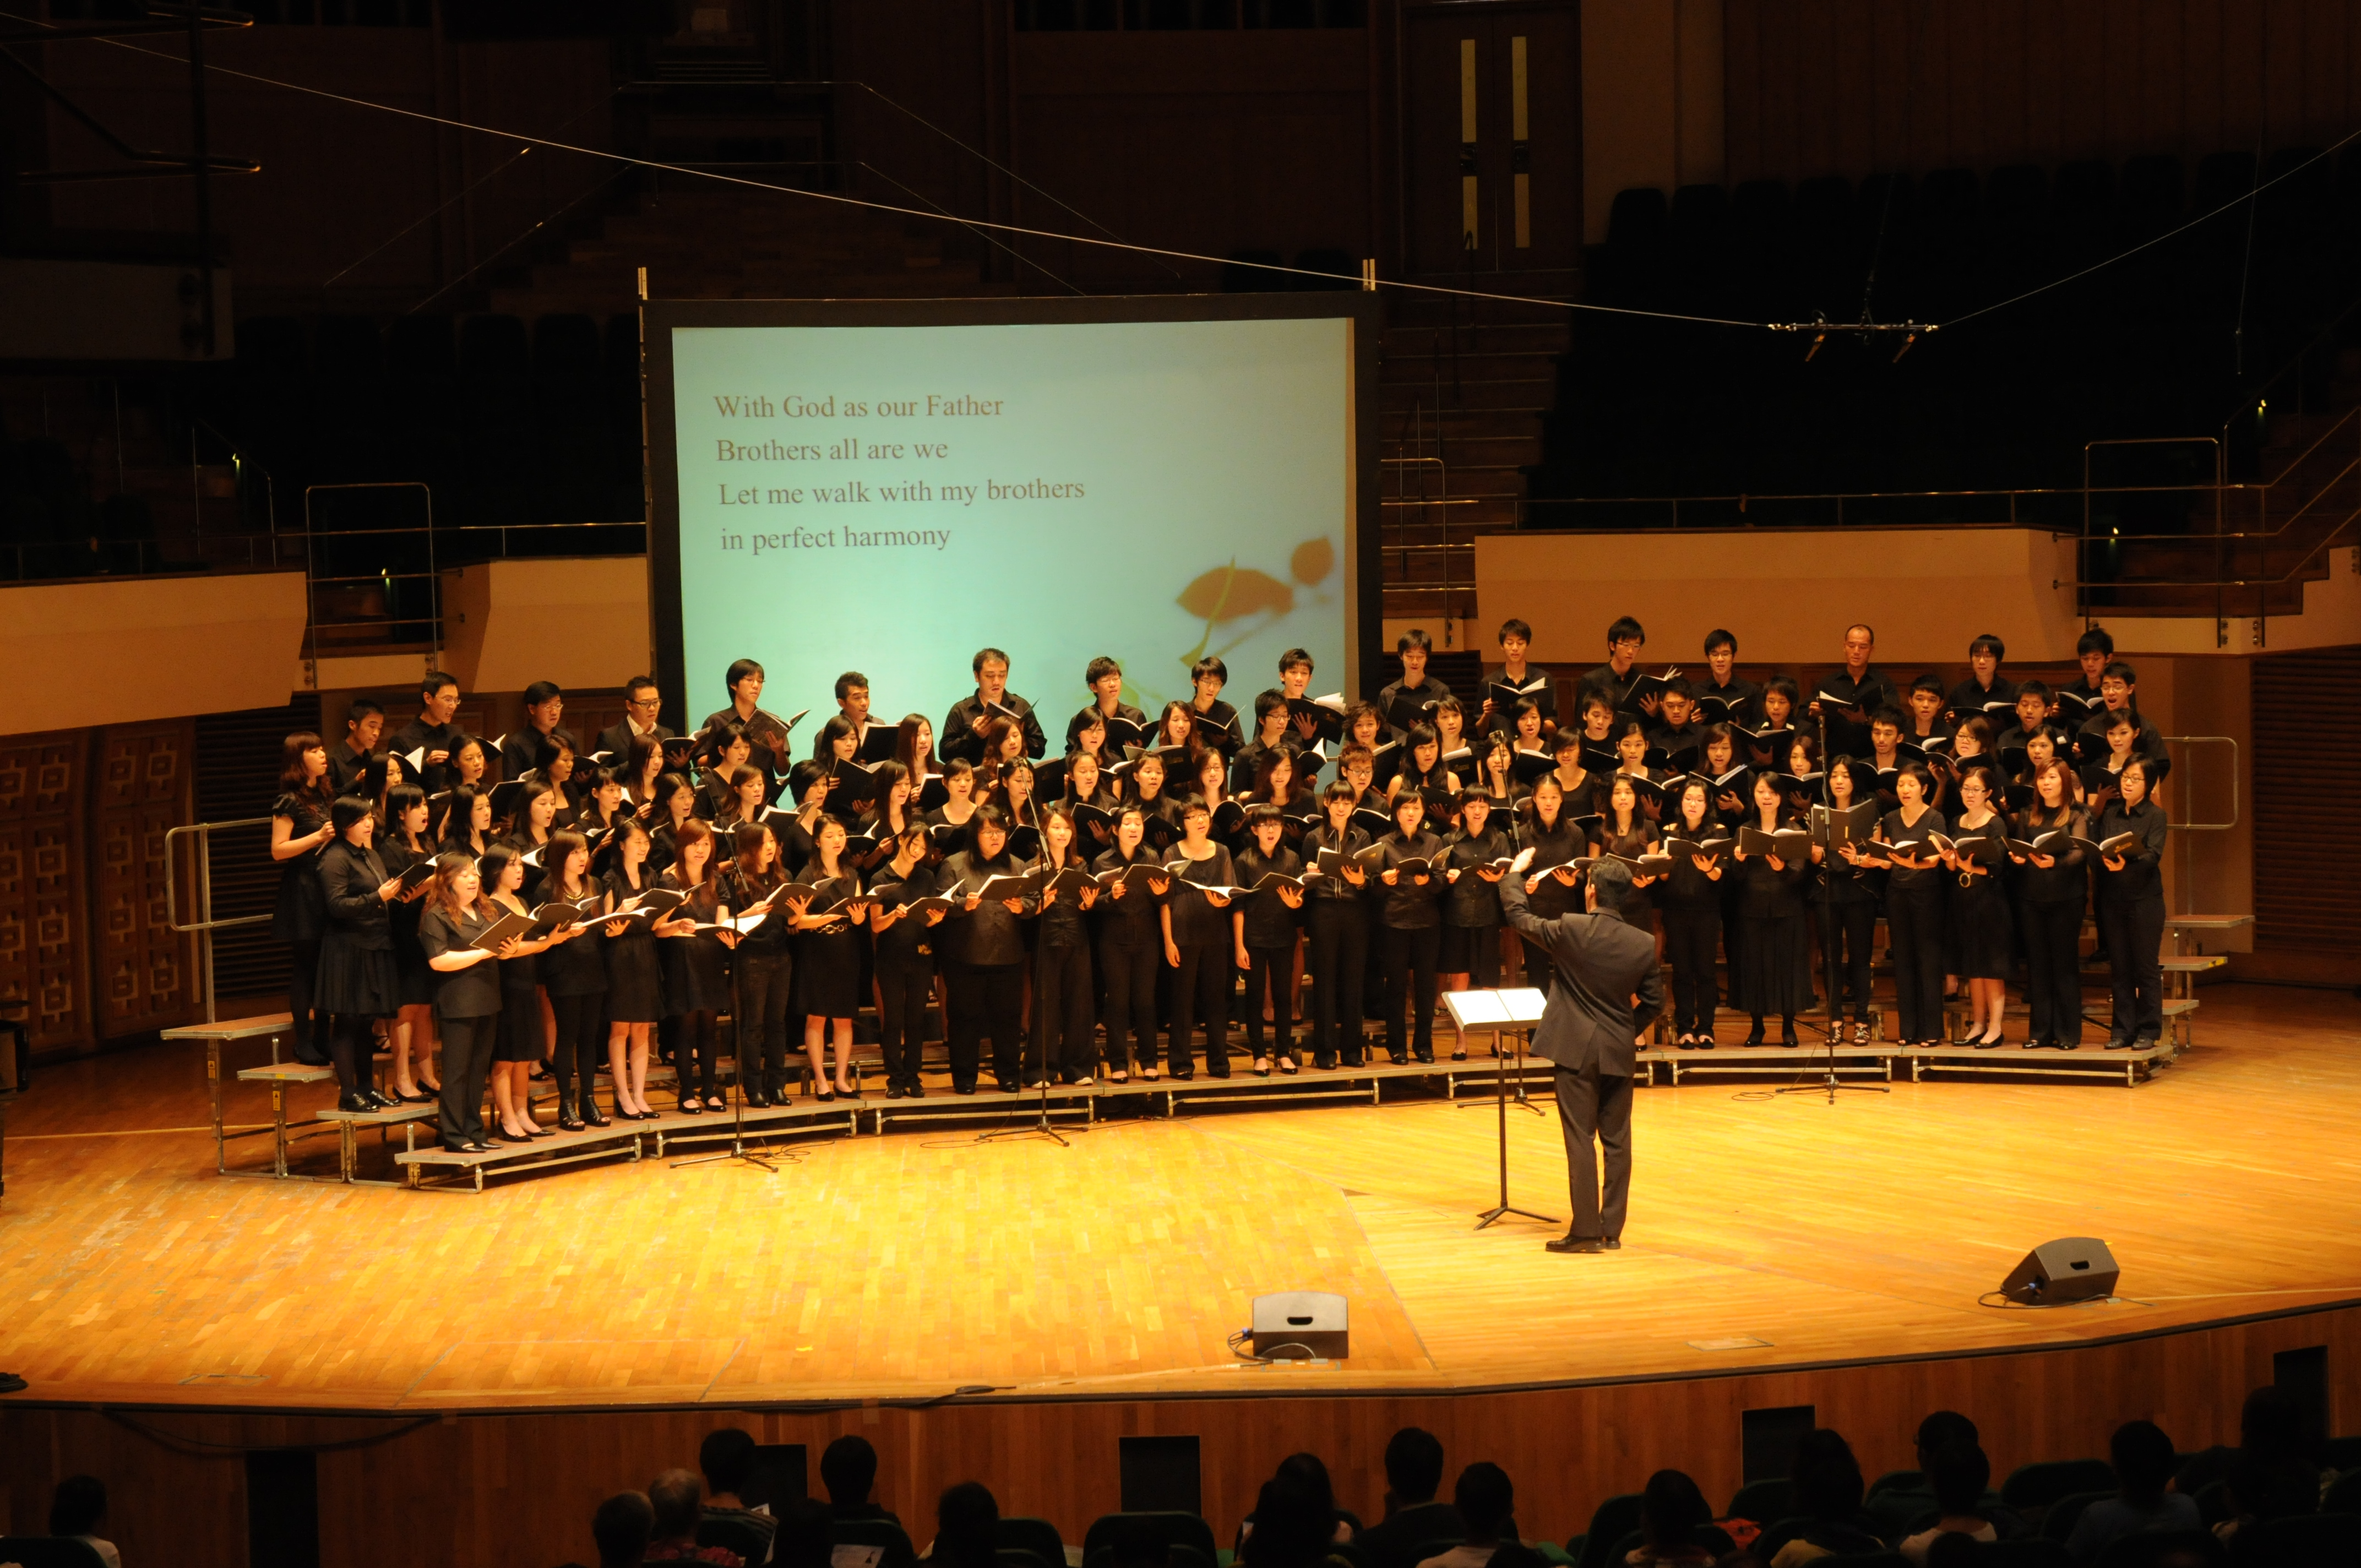 https://hkcchoir.org.hk/sites/default/files/alumni_2010_dedication_to_mr_chan_ho_choi2.jpg